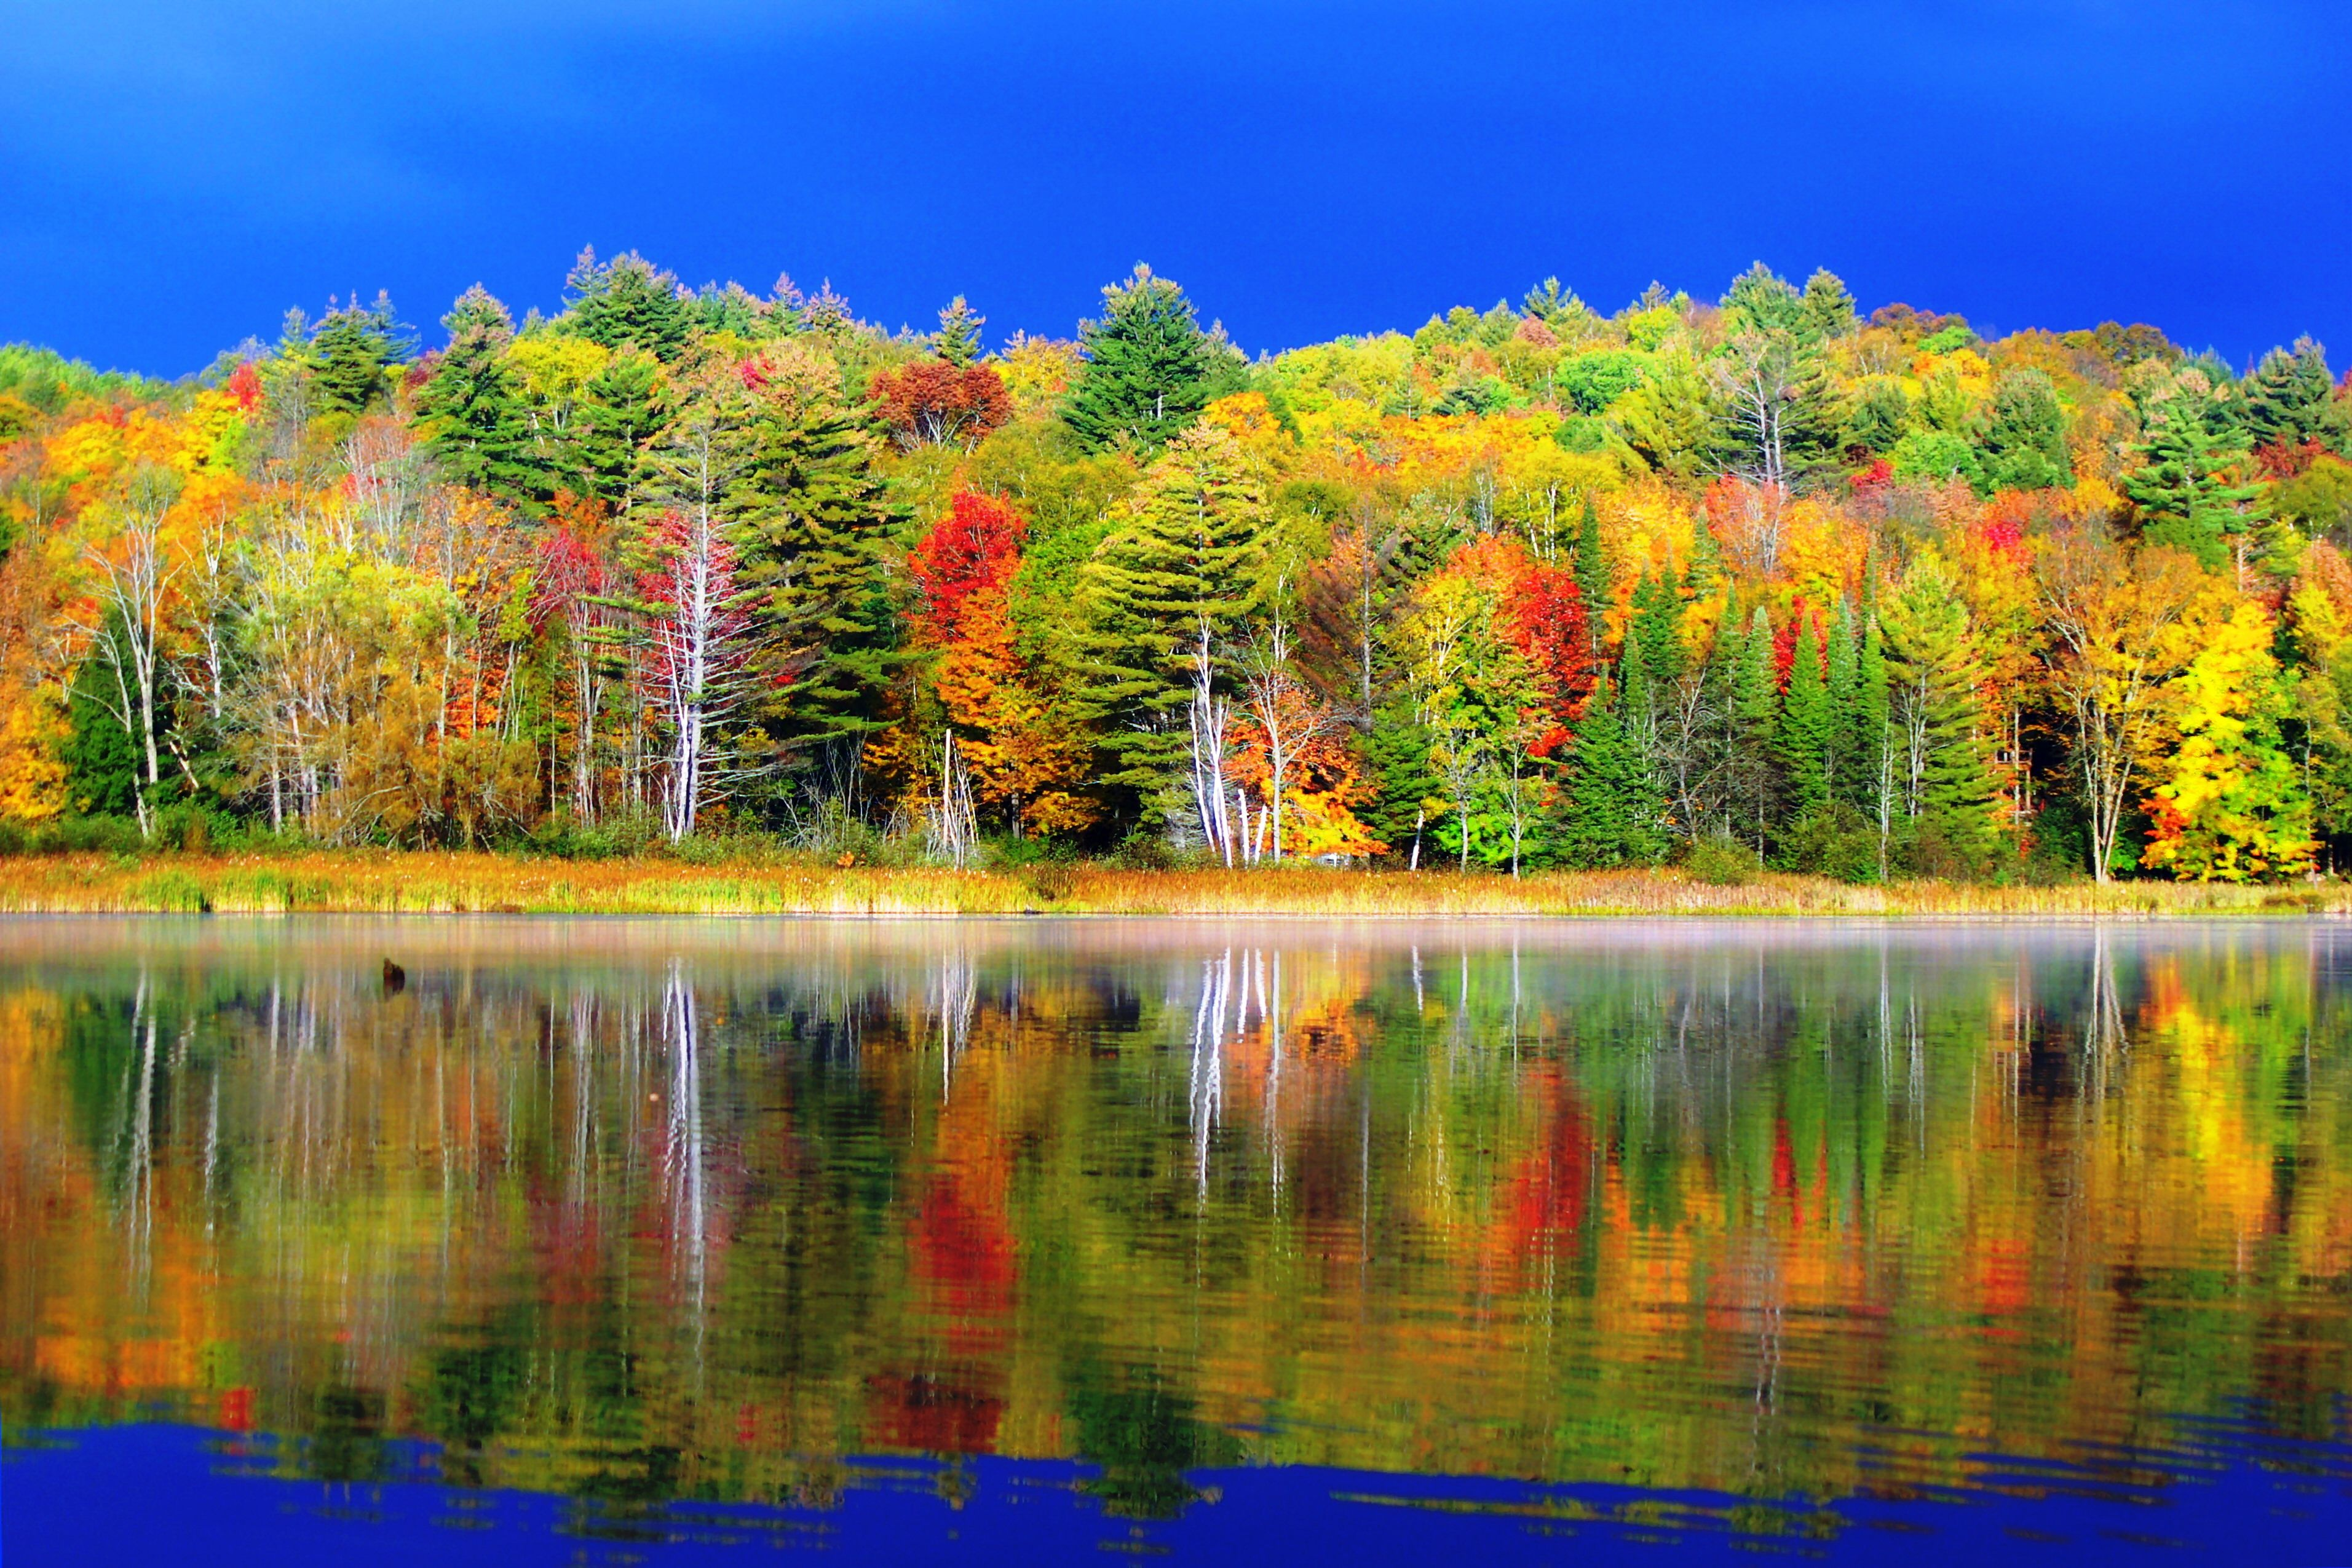 campground area book rental cabins kitchen in accommodations your cabin lake now george adirondacks adirondack img rentals near